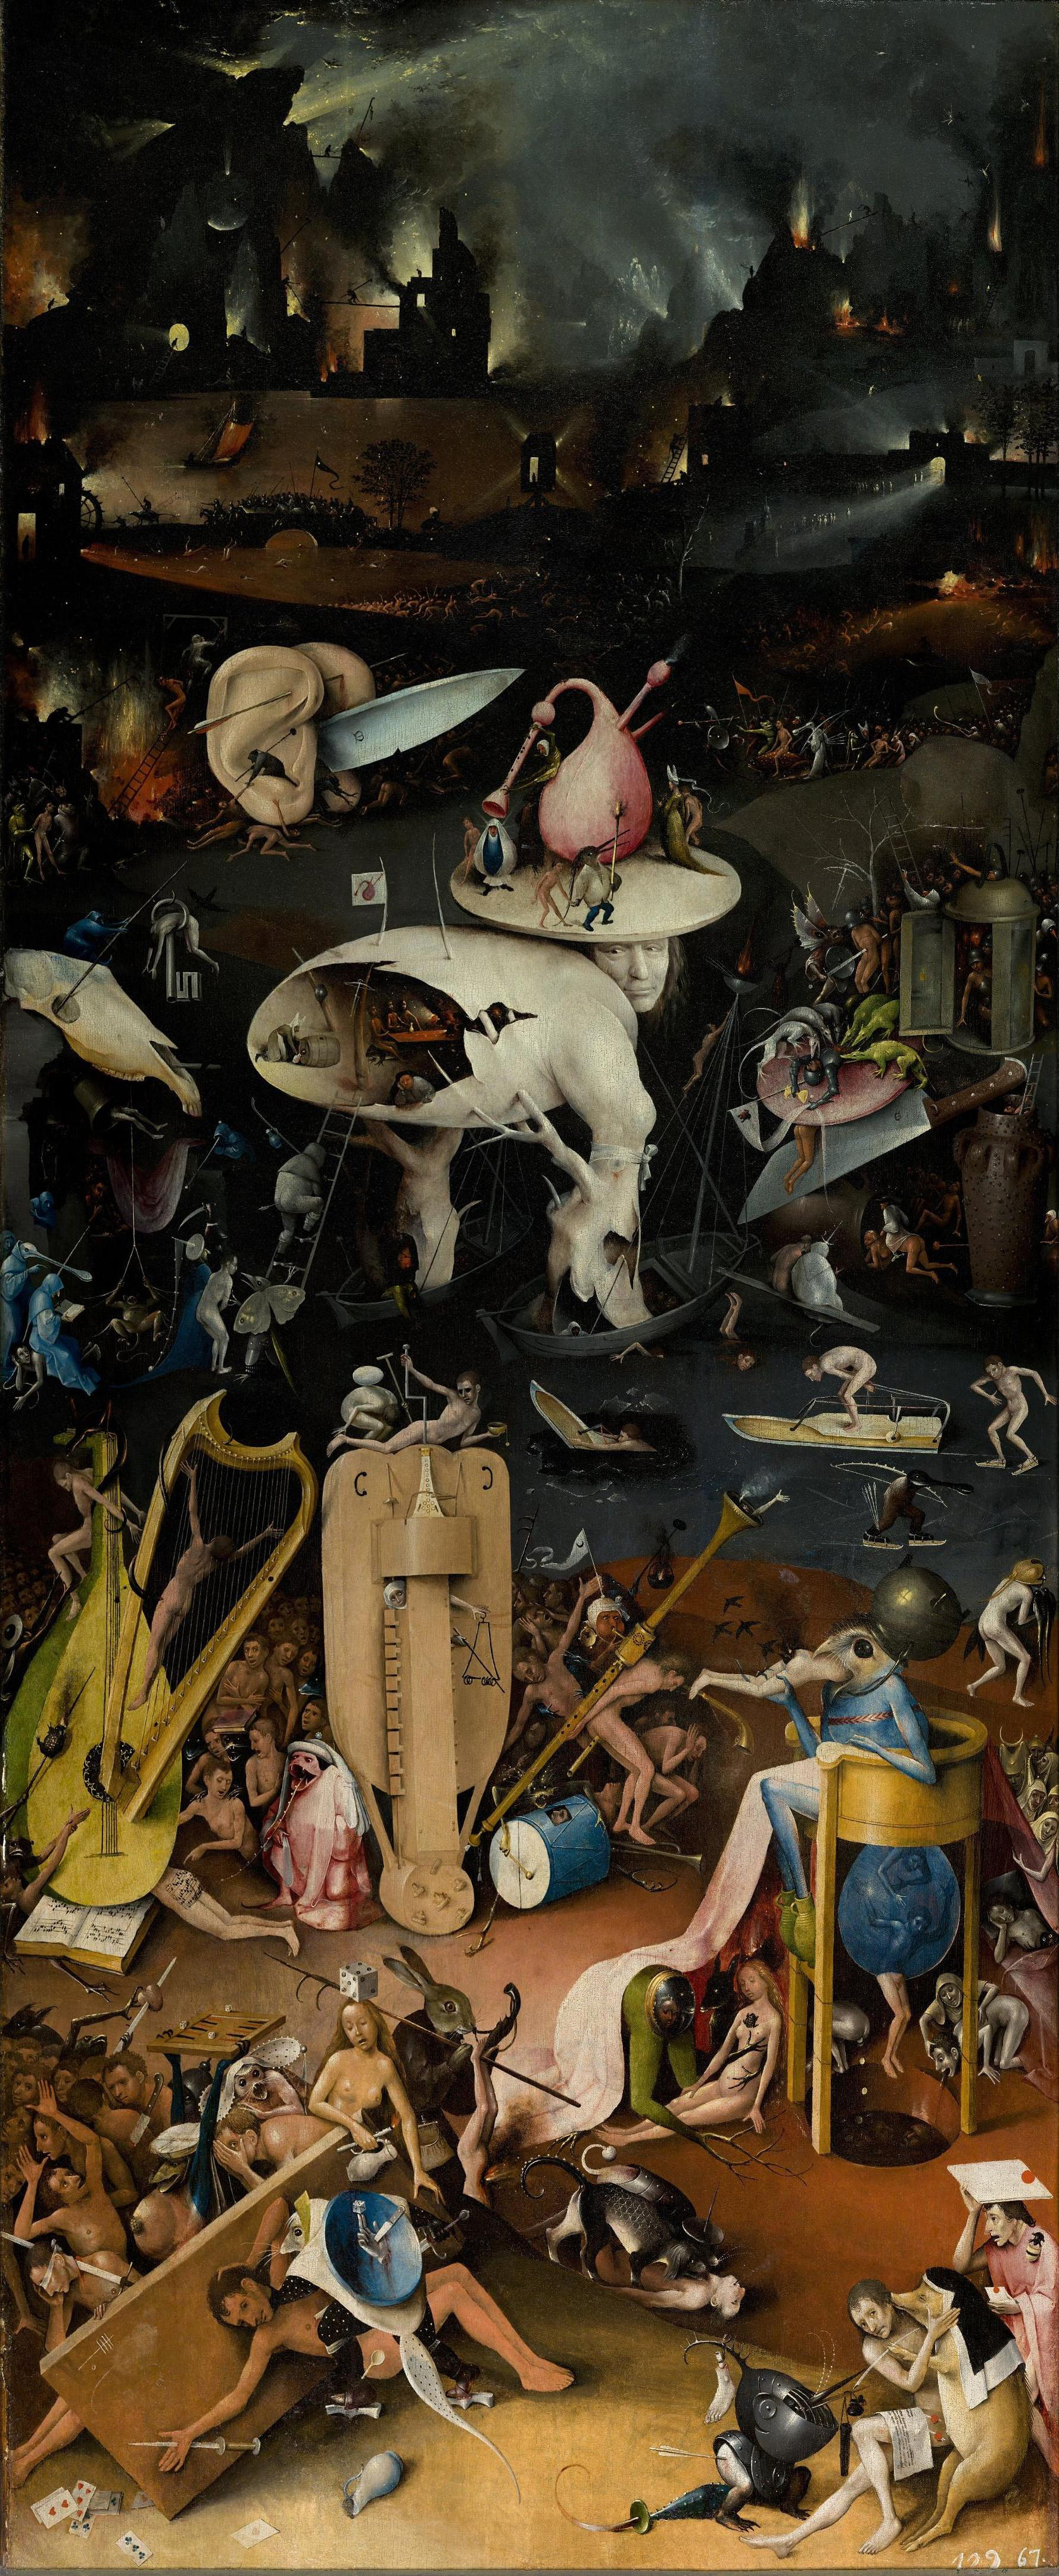 FileHieronymus Bosch , The Garden of Earthly Delights